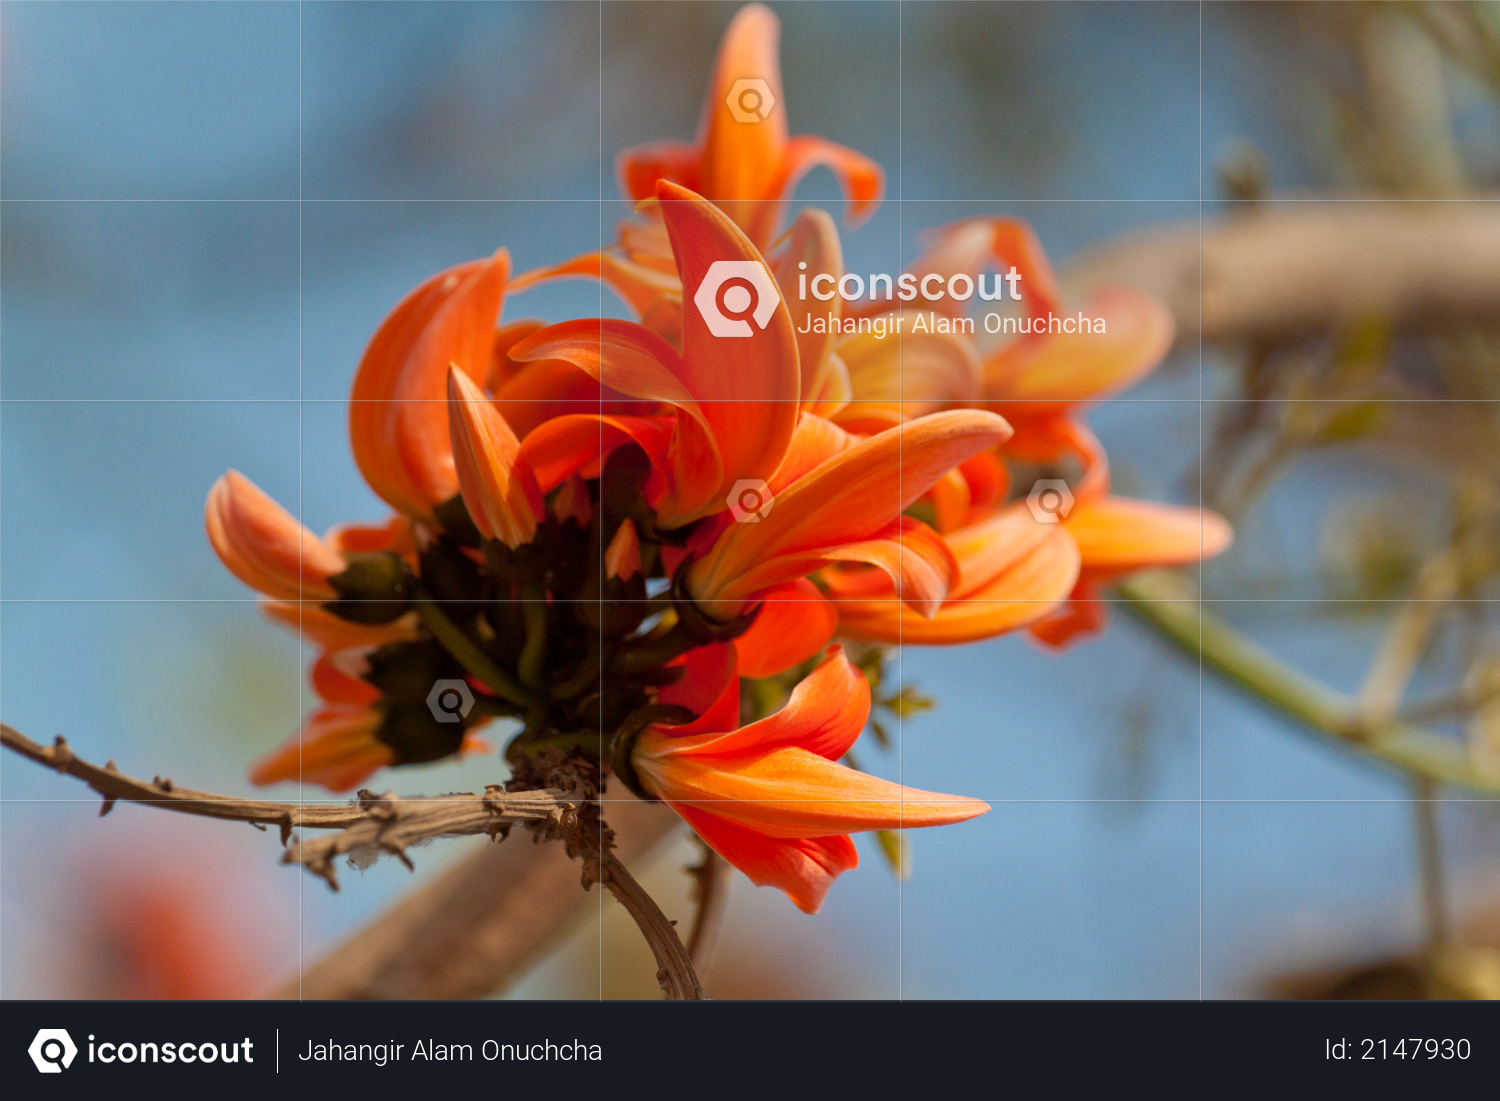 Flame of the forest (Butea monosperma) in full bloom in Dhaka, Bangladesh Photo